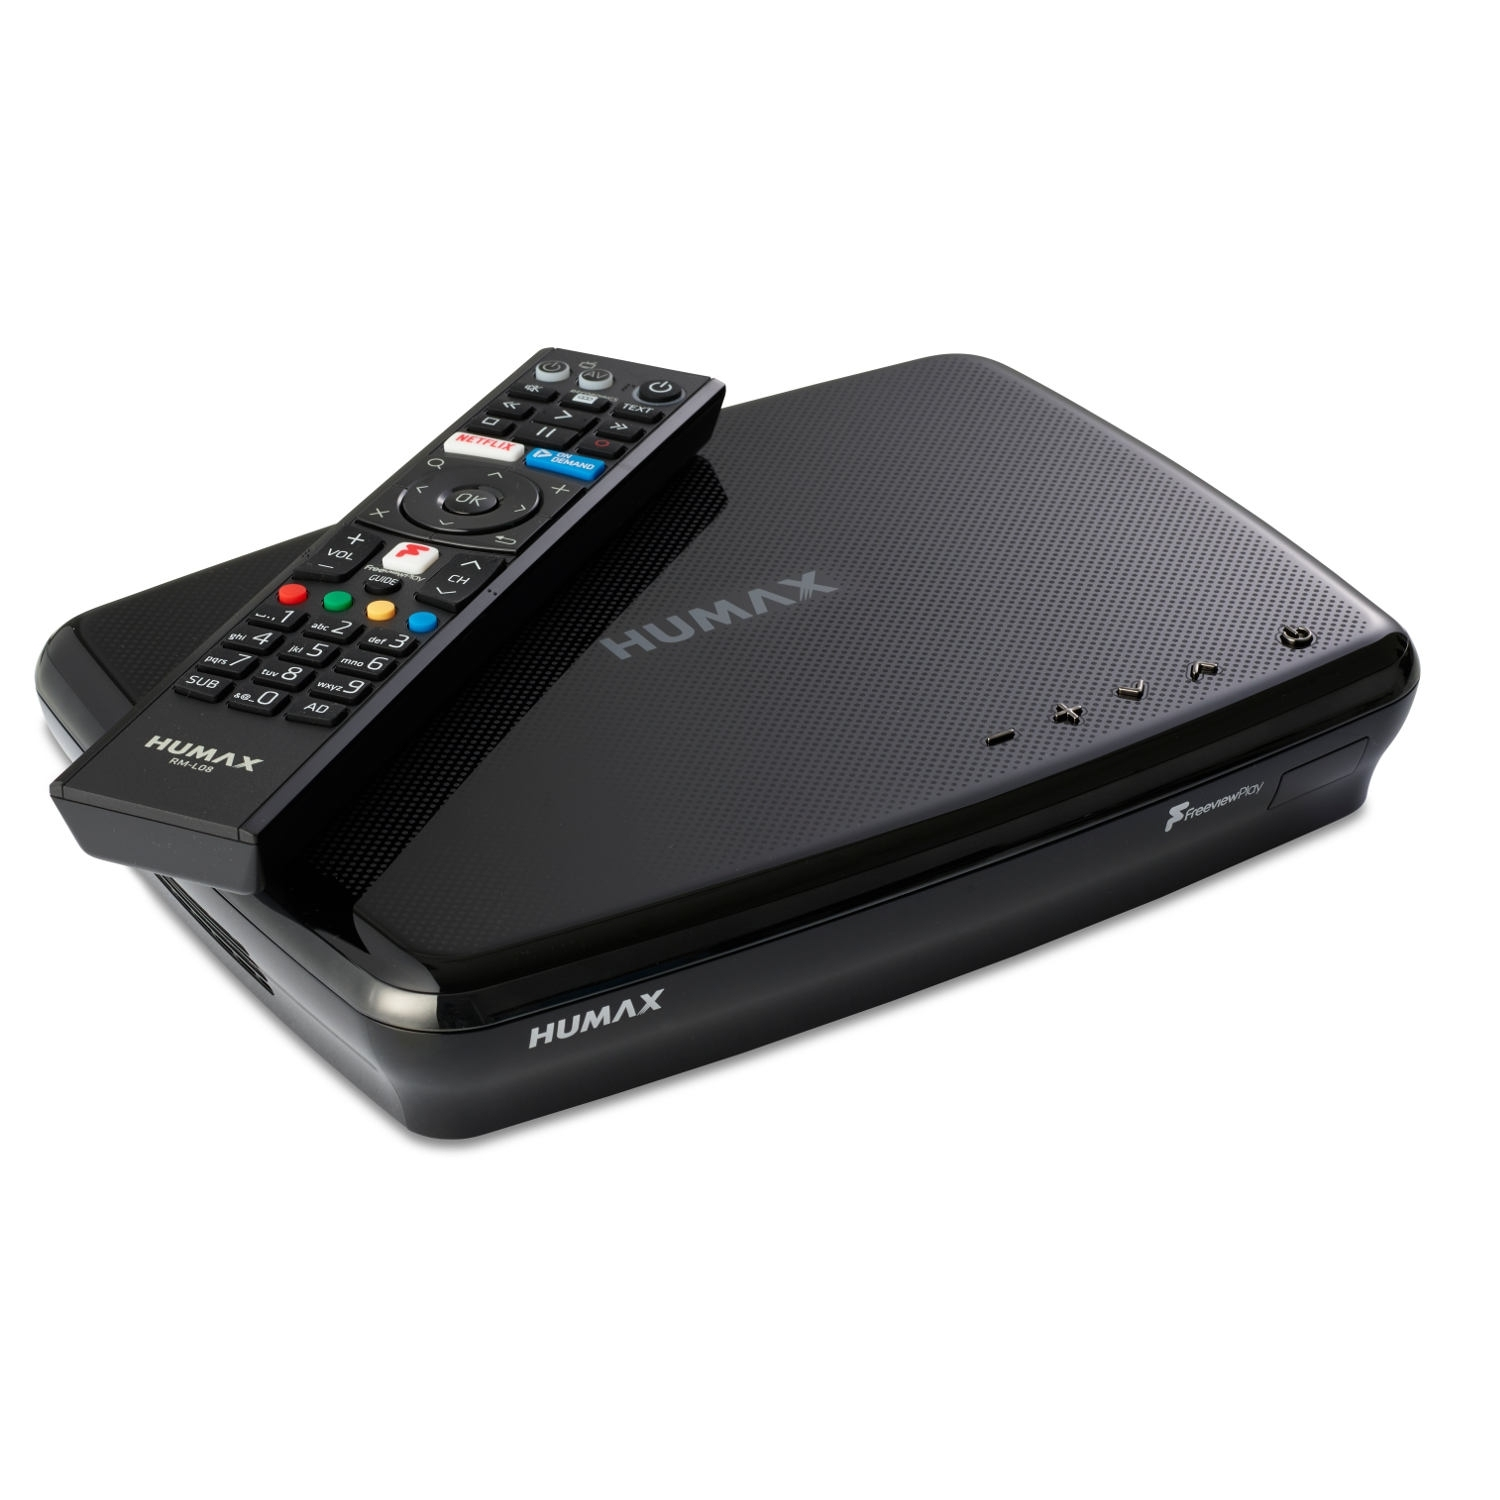 Humax FVP5000T 500GB Digital Video Recorder - 500 GB HDD-Freeview-HD- Smart- Black - 0